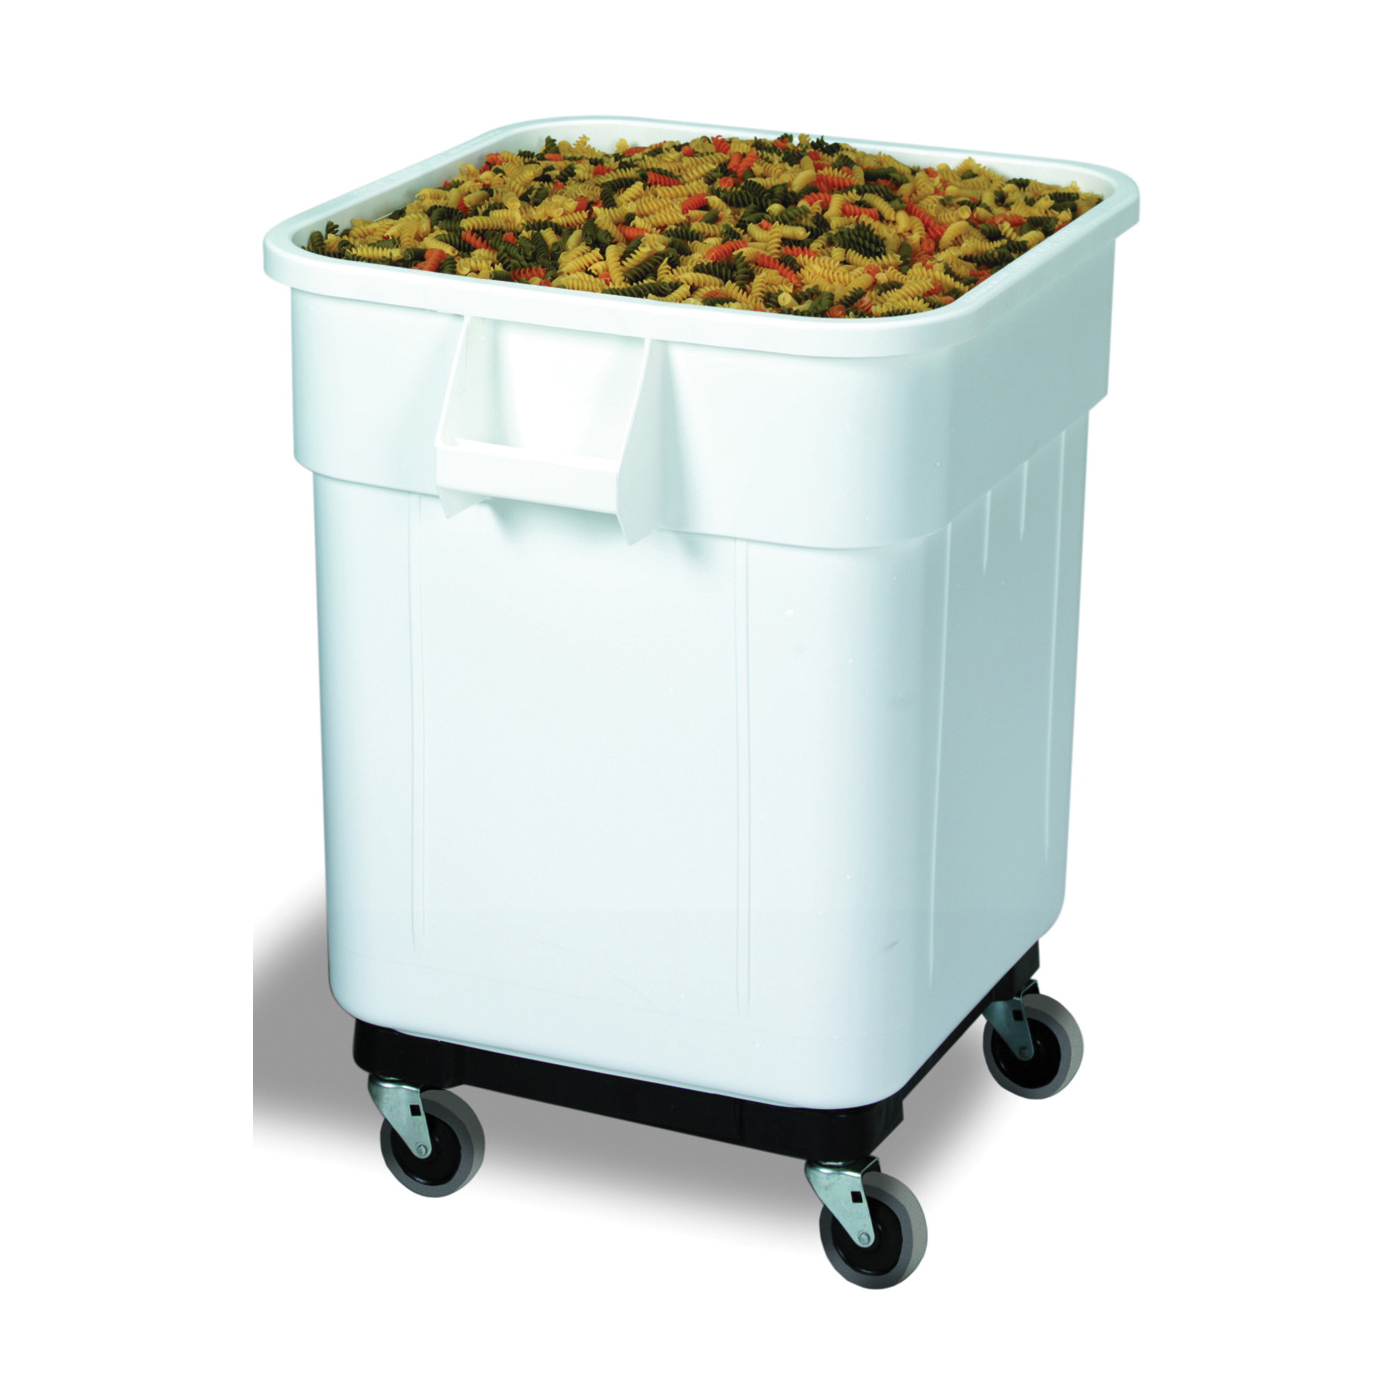 Picture of CONTINENTAL COMMERCIAL 9332 Ingredient Bin, 32 gal Capacity, Plastic, White, 25 in L, 21-1/2 in W, 27-1/2 in H